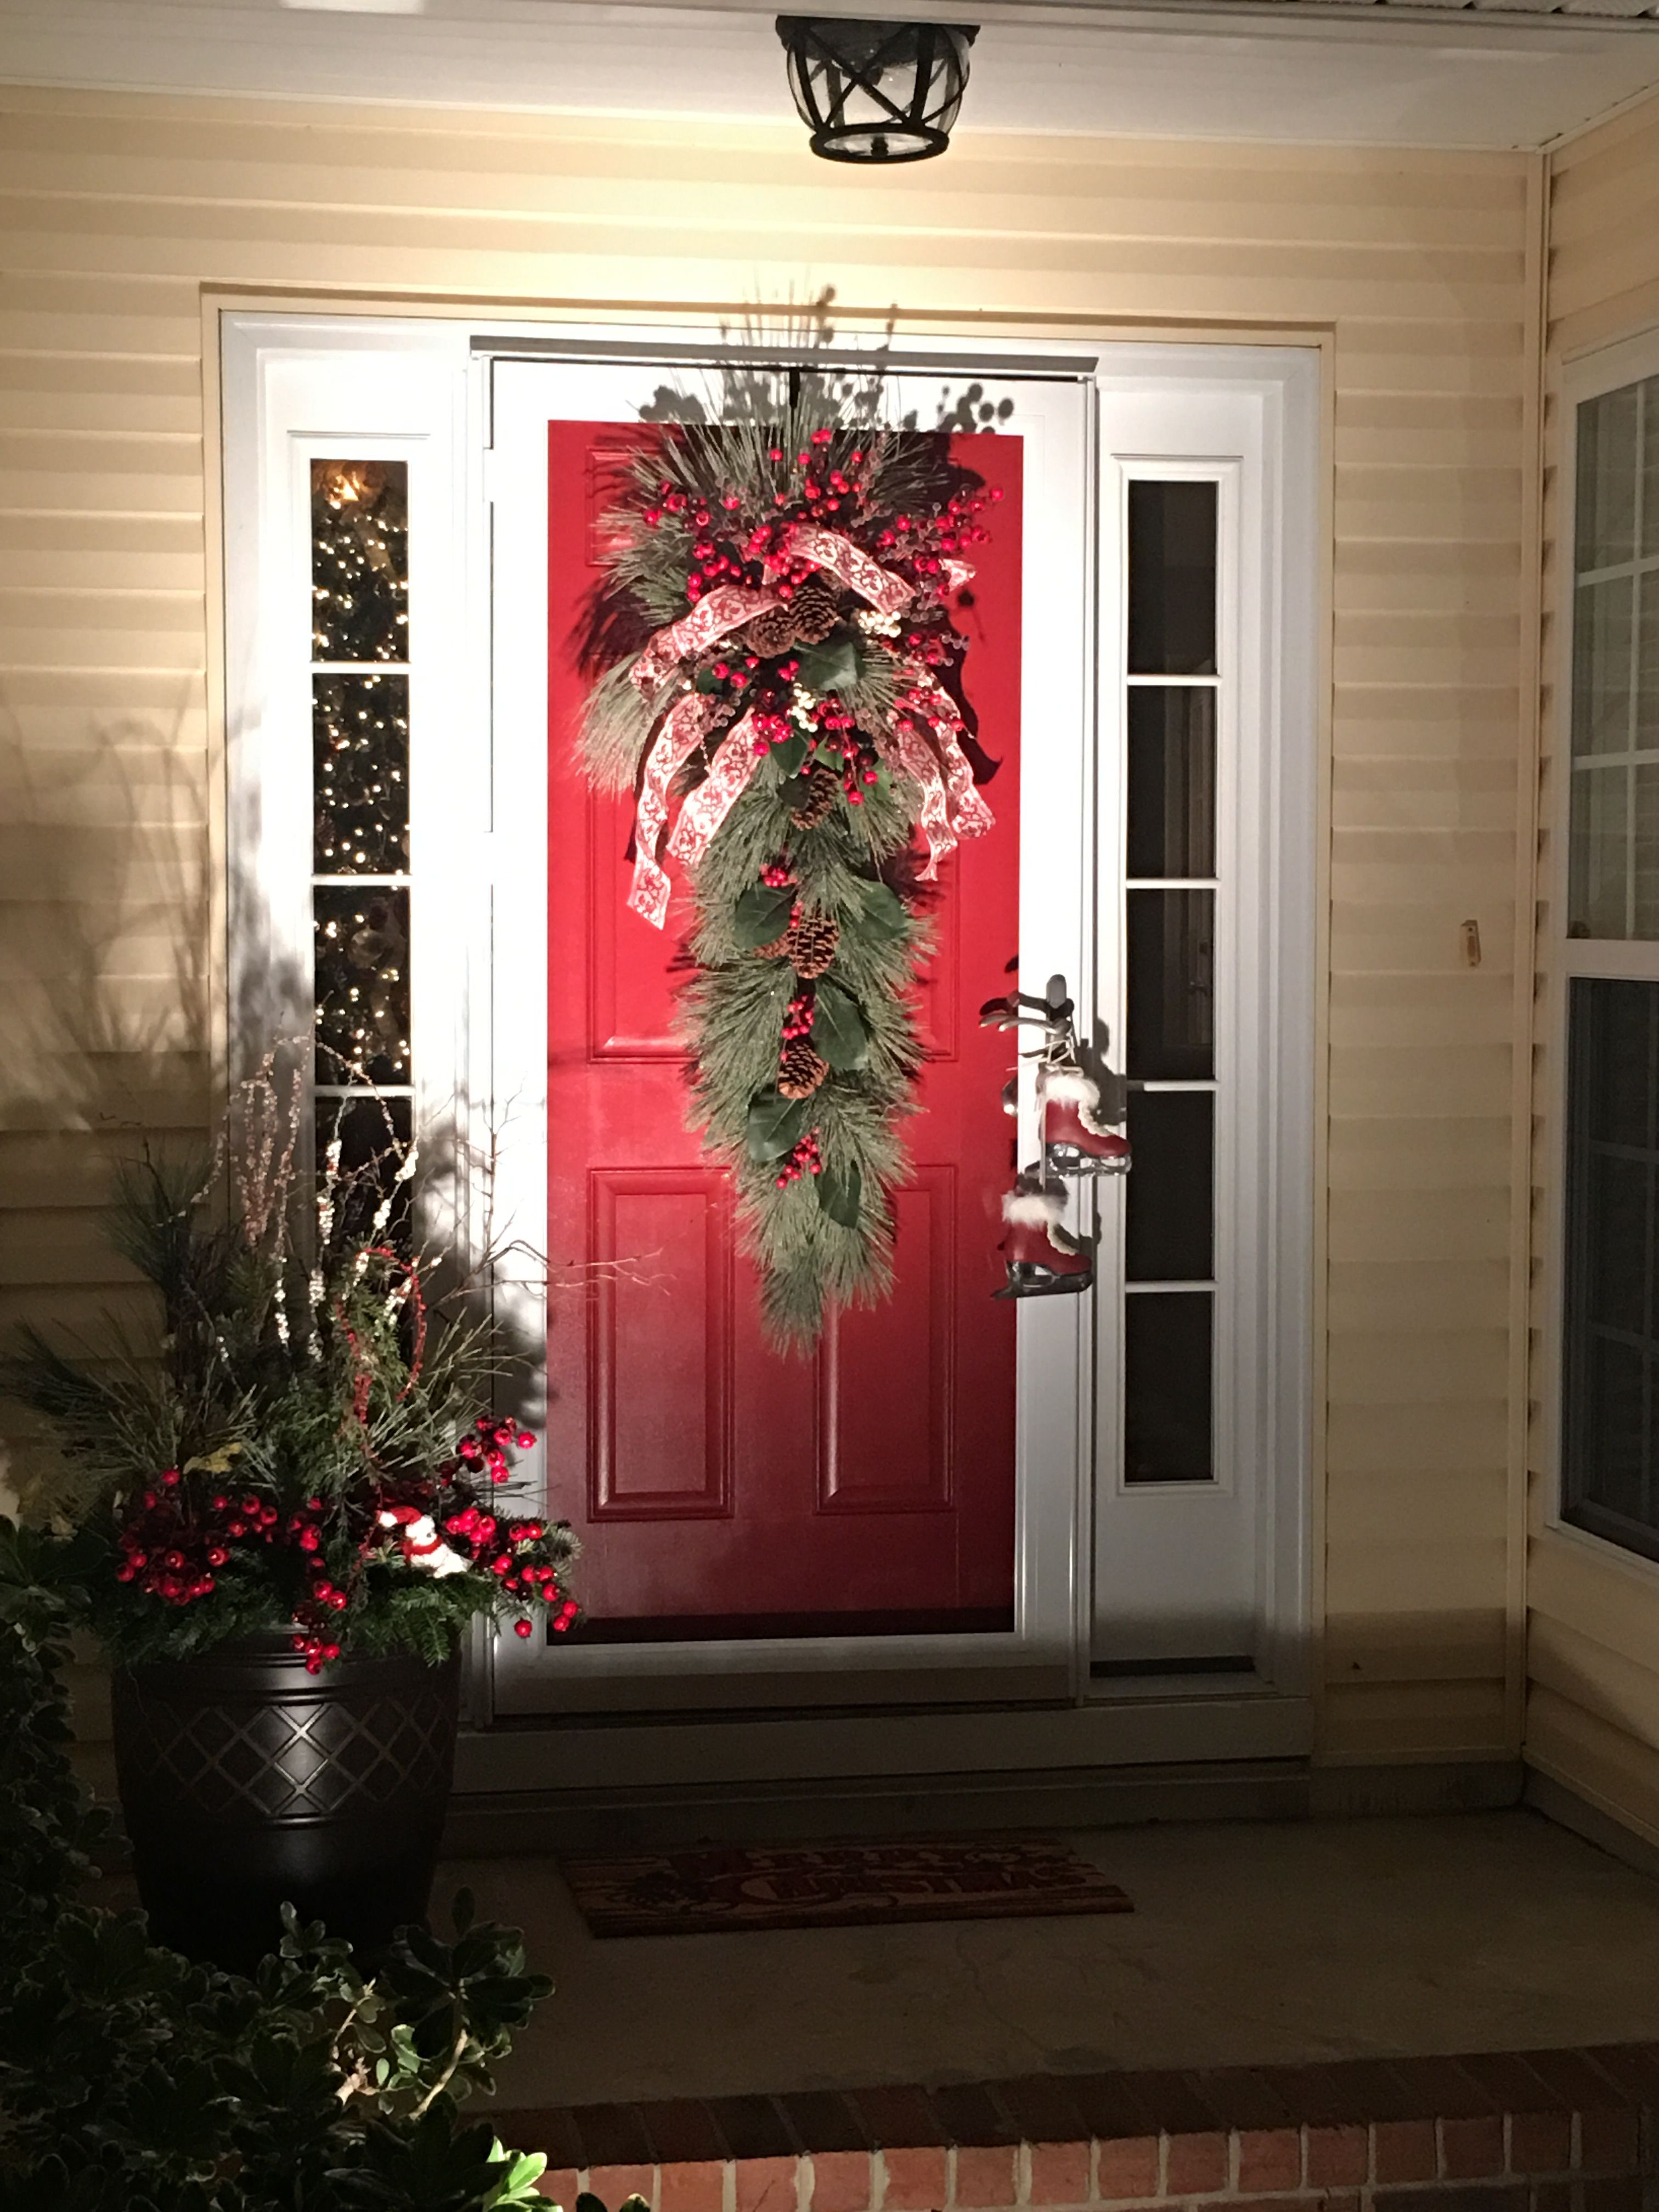 exquisite front porch designs for colonial homes. Explore these ideas and much more  Pin by Sheri Graves DeBord on A Touch Of Christmas Pinterest